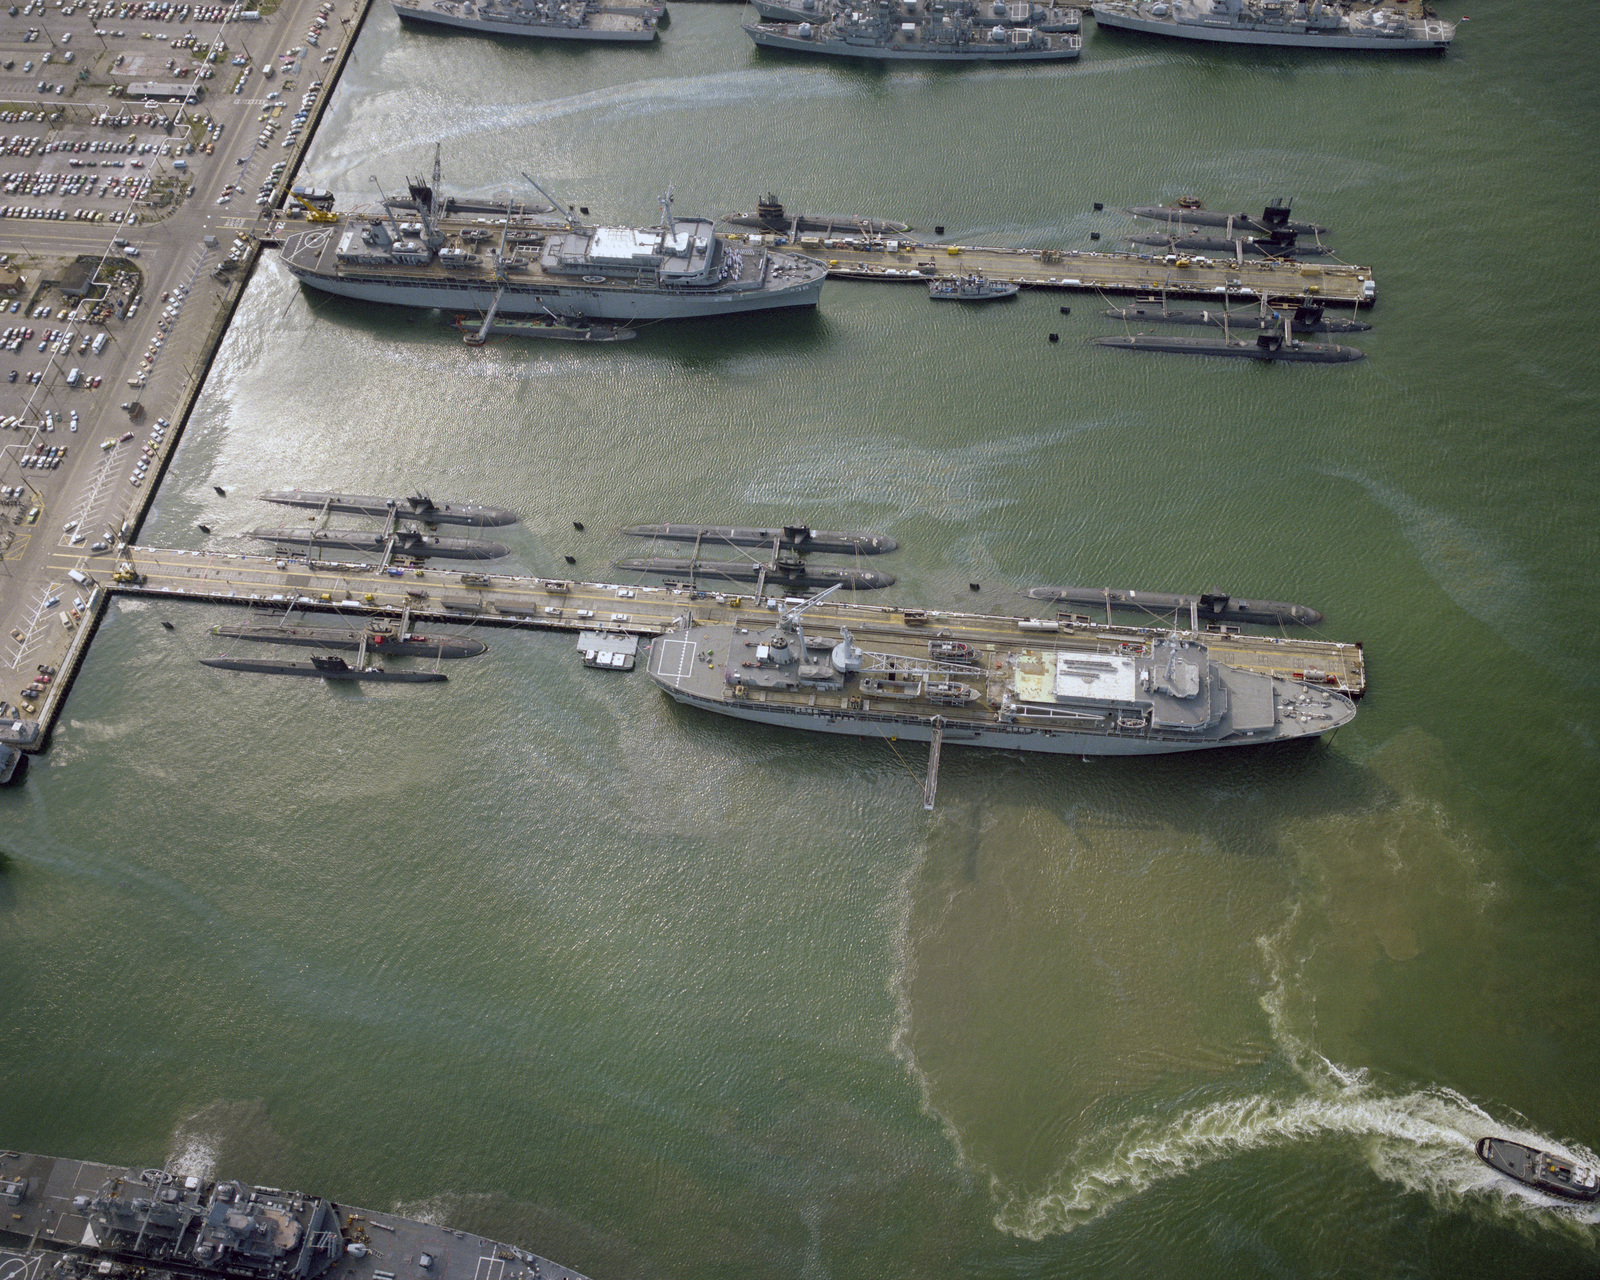 An aerial view of the destroyer and submarine piers (Nos. 22 and 23) with various ships at anchor